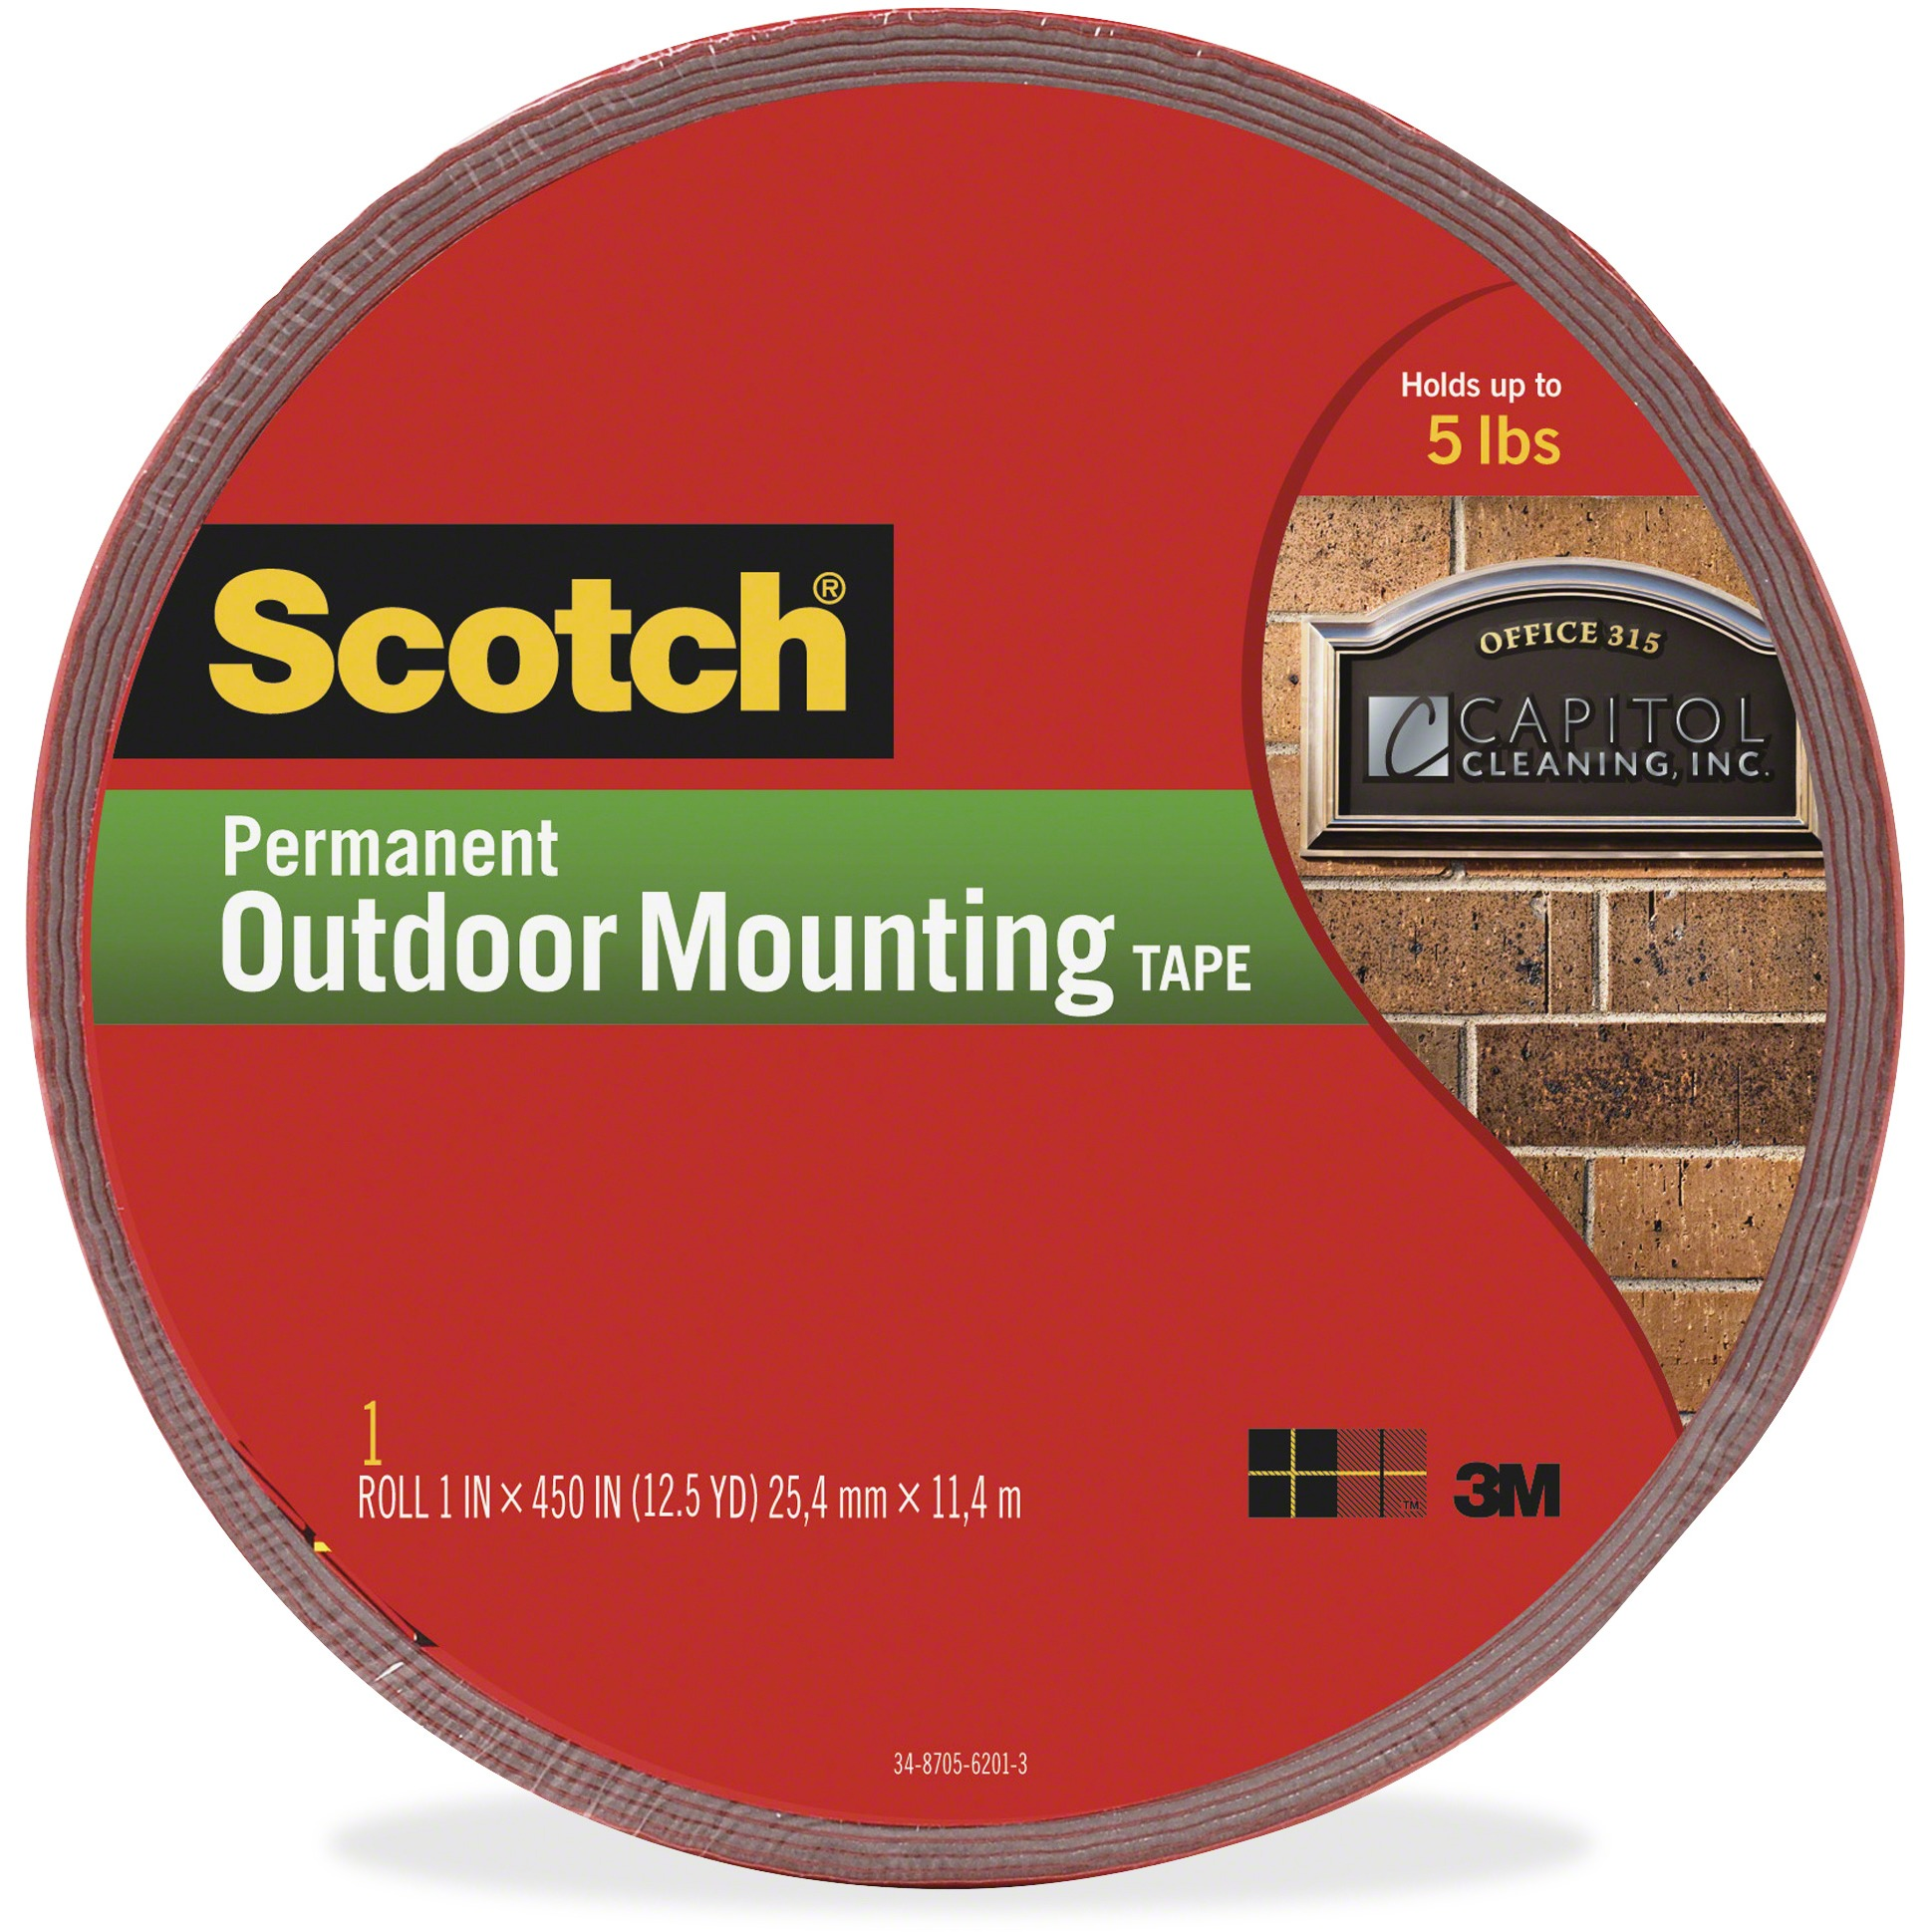 Scotch, MMM4011LONG, 5 lb Permanent Outdoor Mounting Tape, 1 Roll, Gray